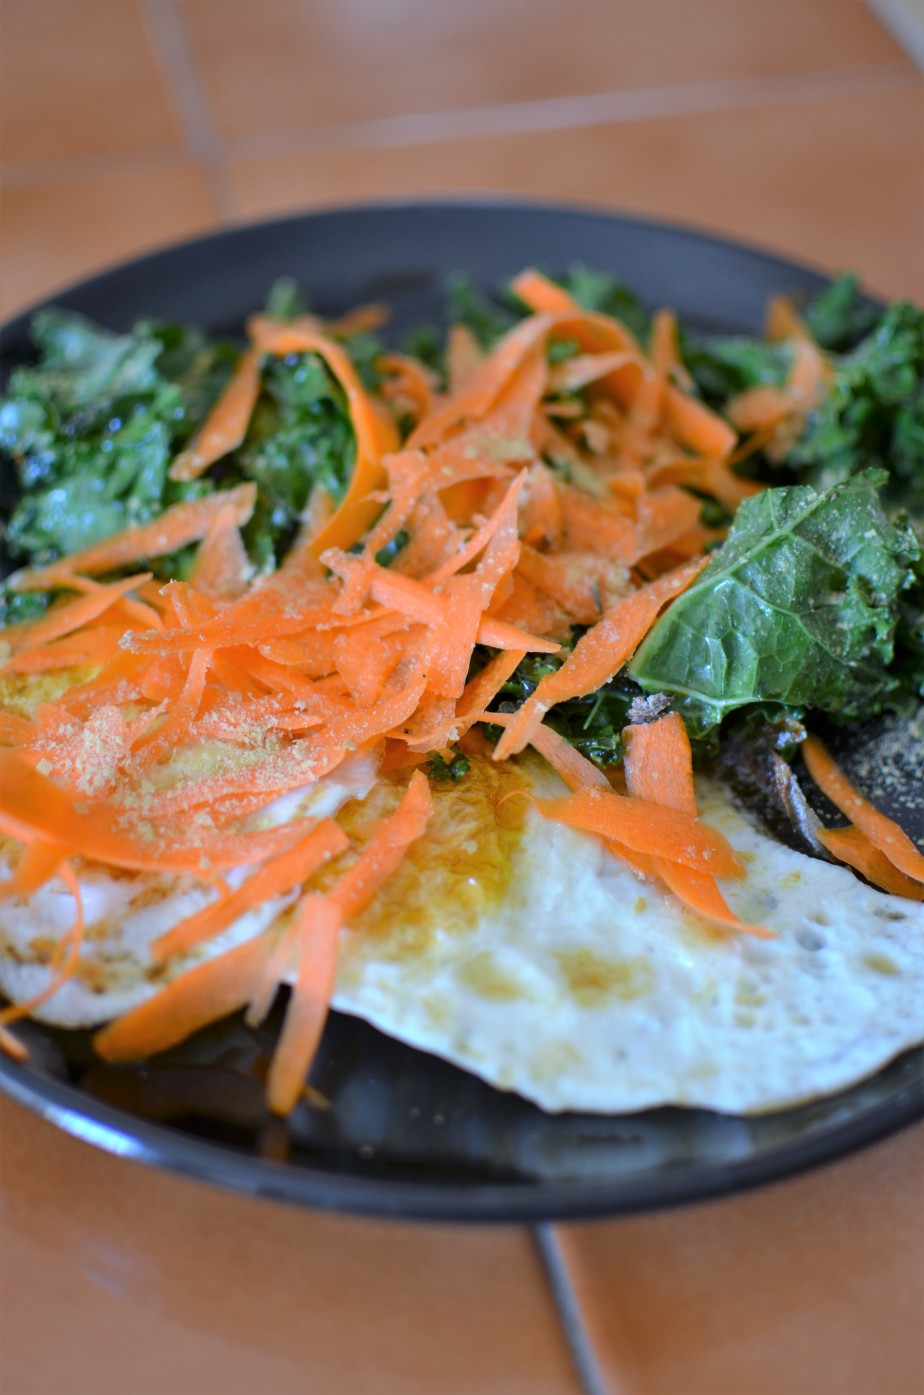 Fried Egg and Kale Breakfast Salad